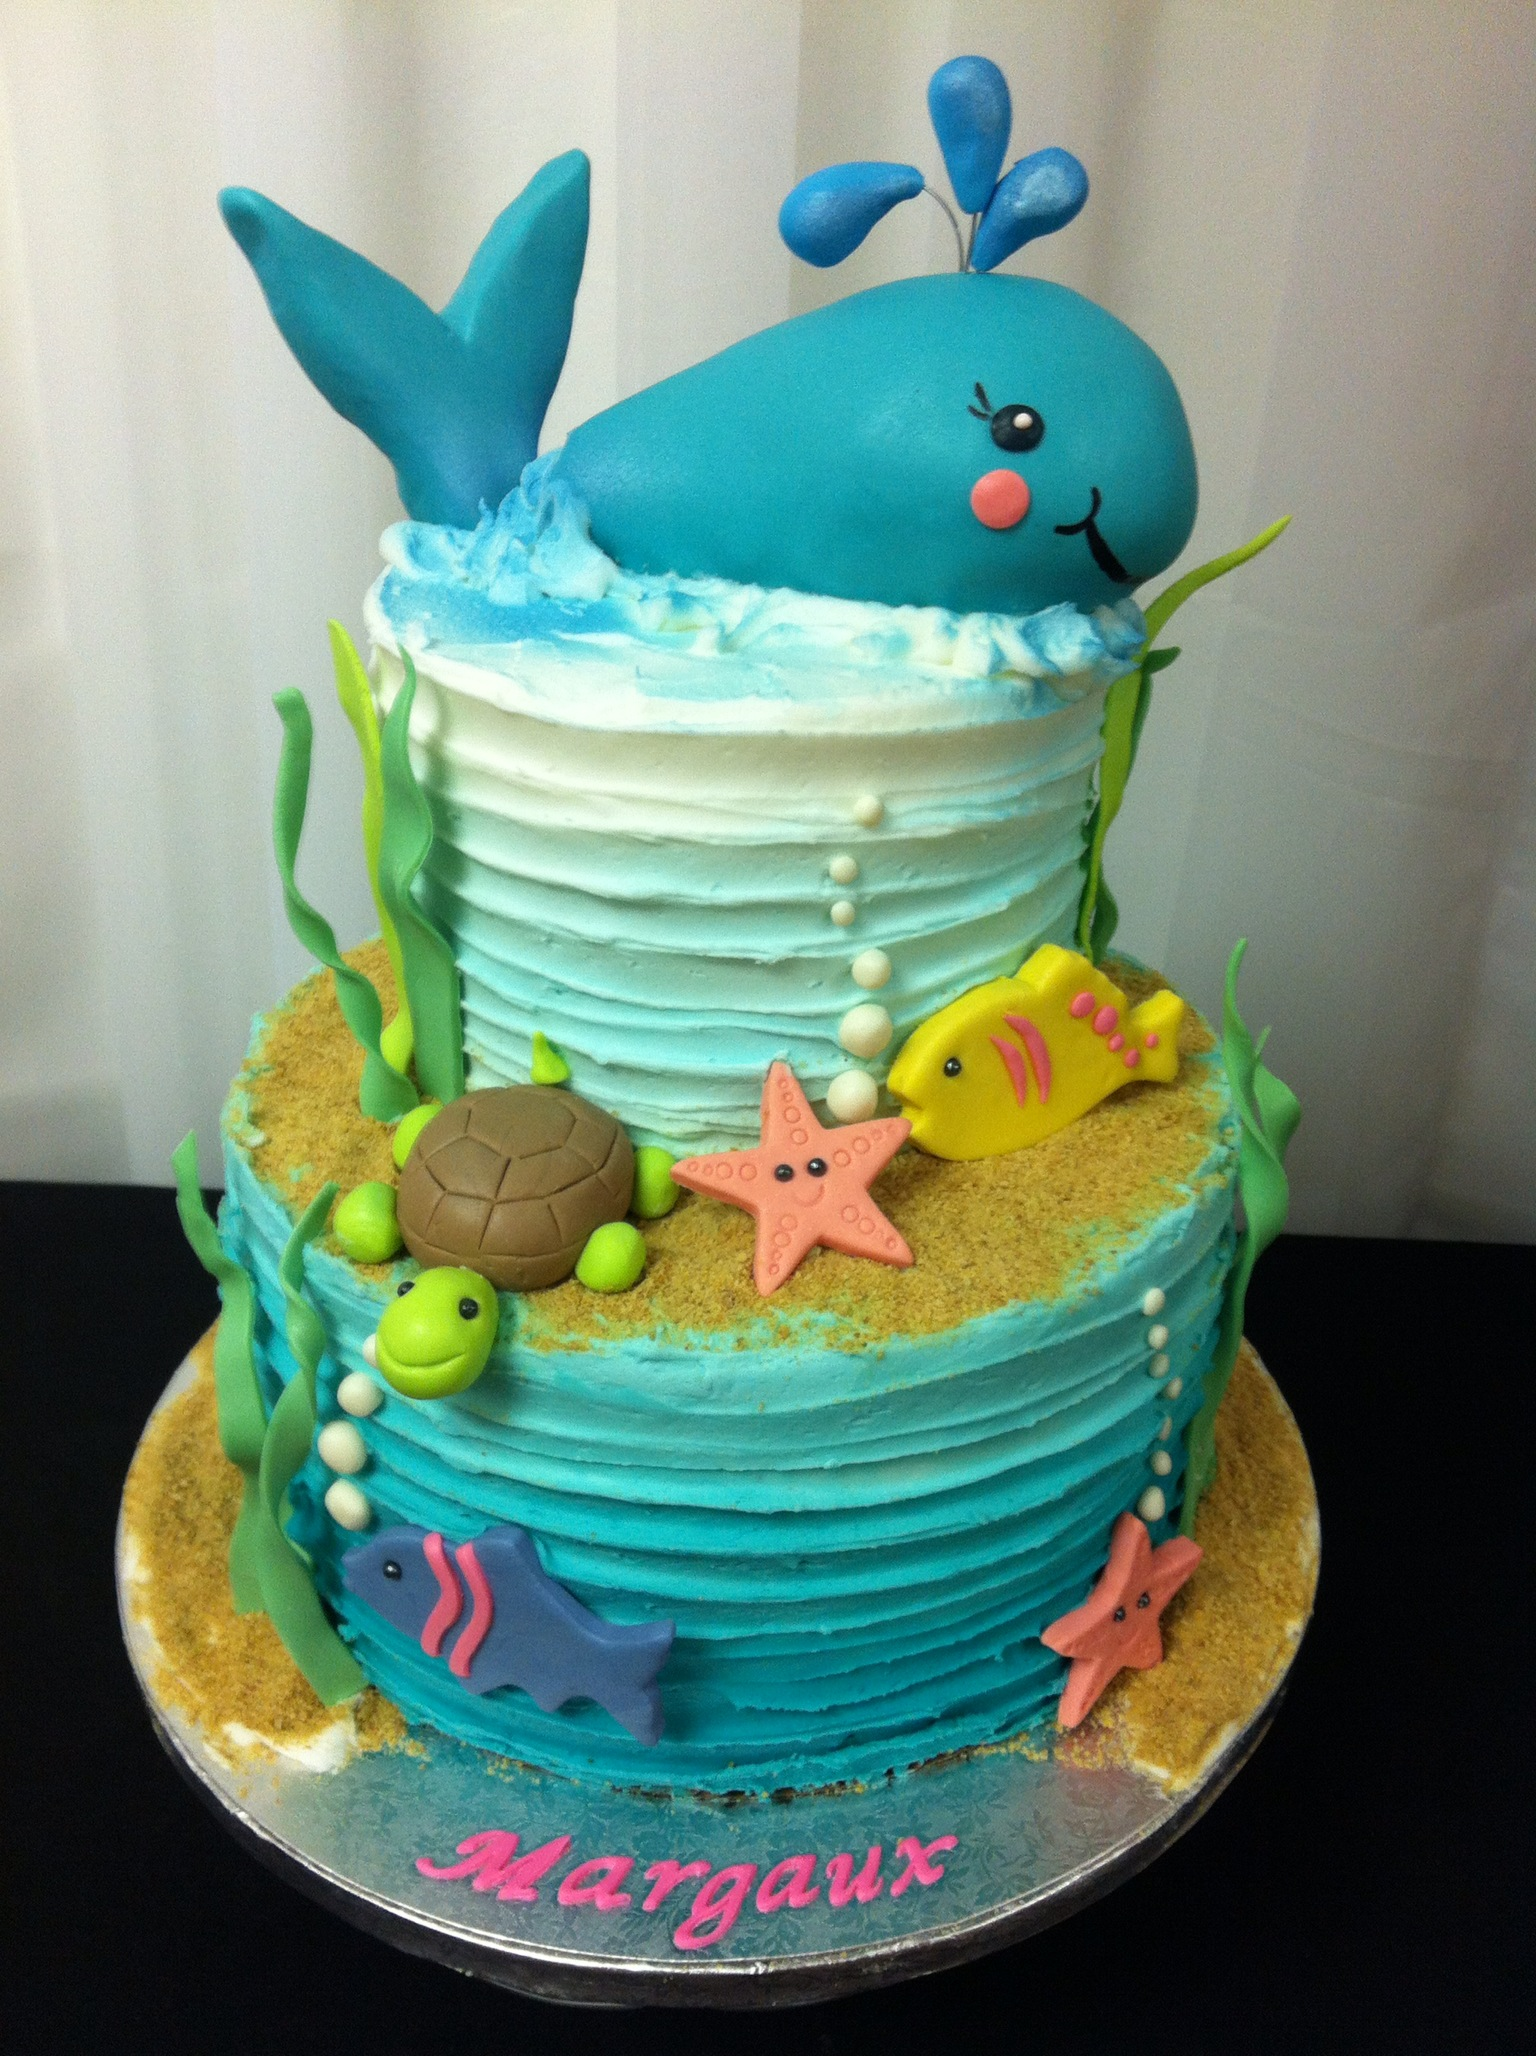 Happy bday Margaux ocean-themed cake